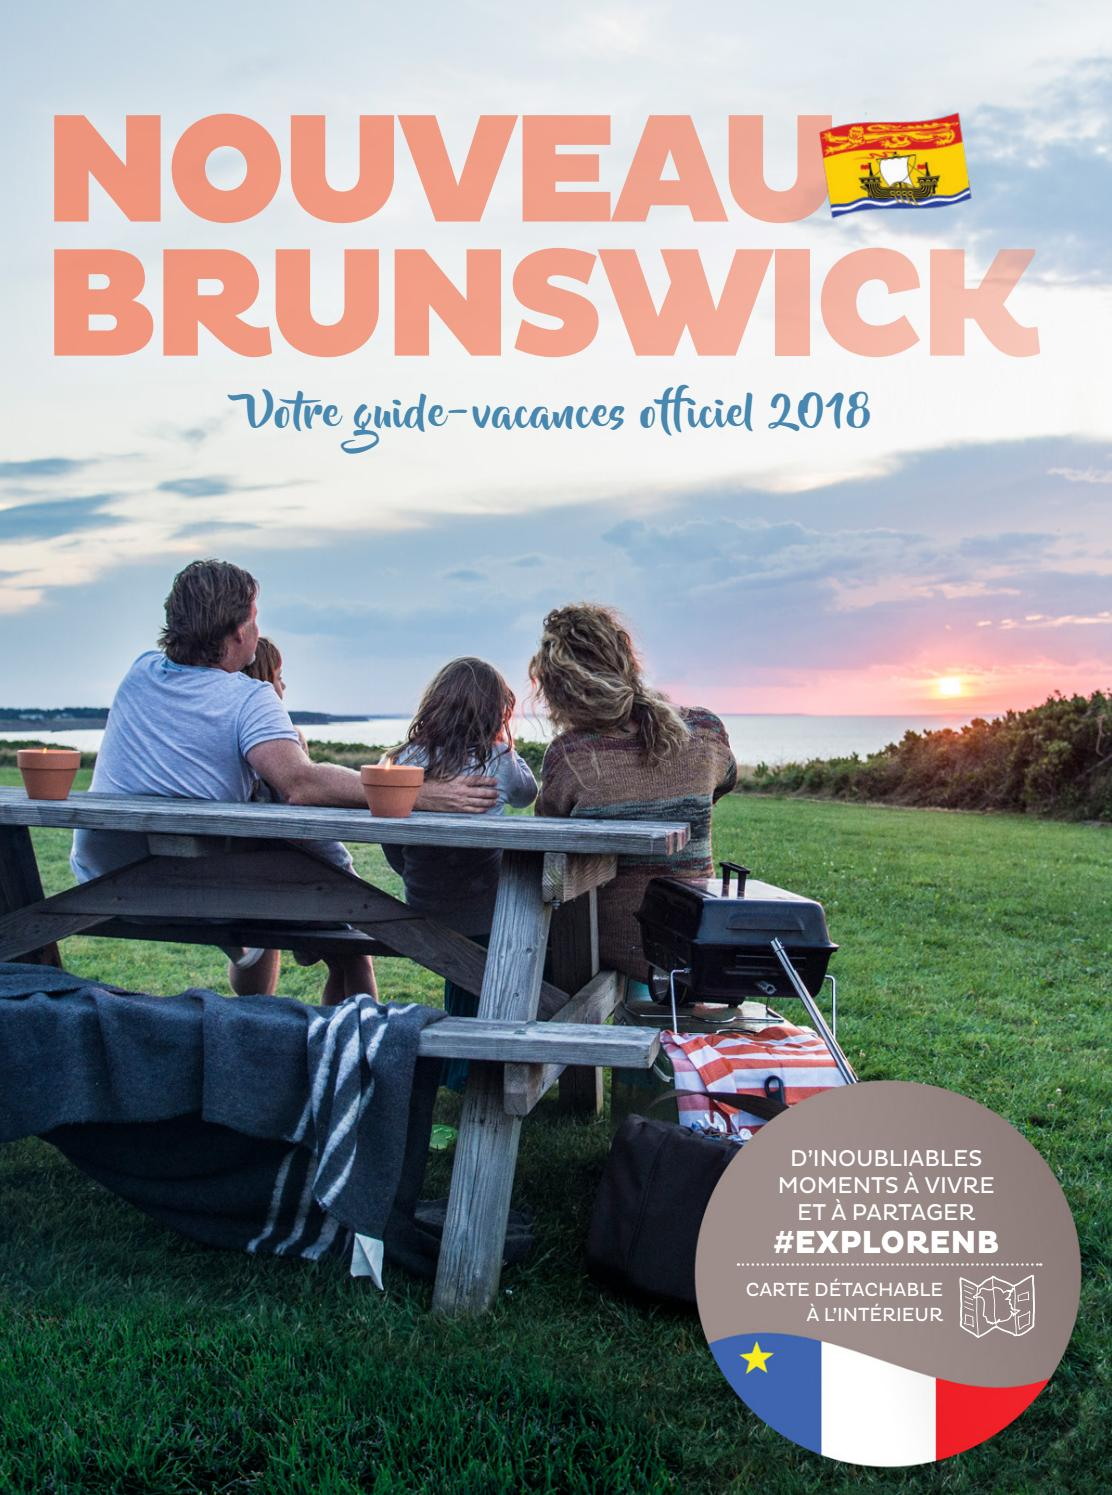 Nouveau Brunswick Votre Guide Vacances Officiel 2018 By Official New Brunswick Travel Guide Guide Vacances Officiel Du Nouveau Brunswick Issuu